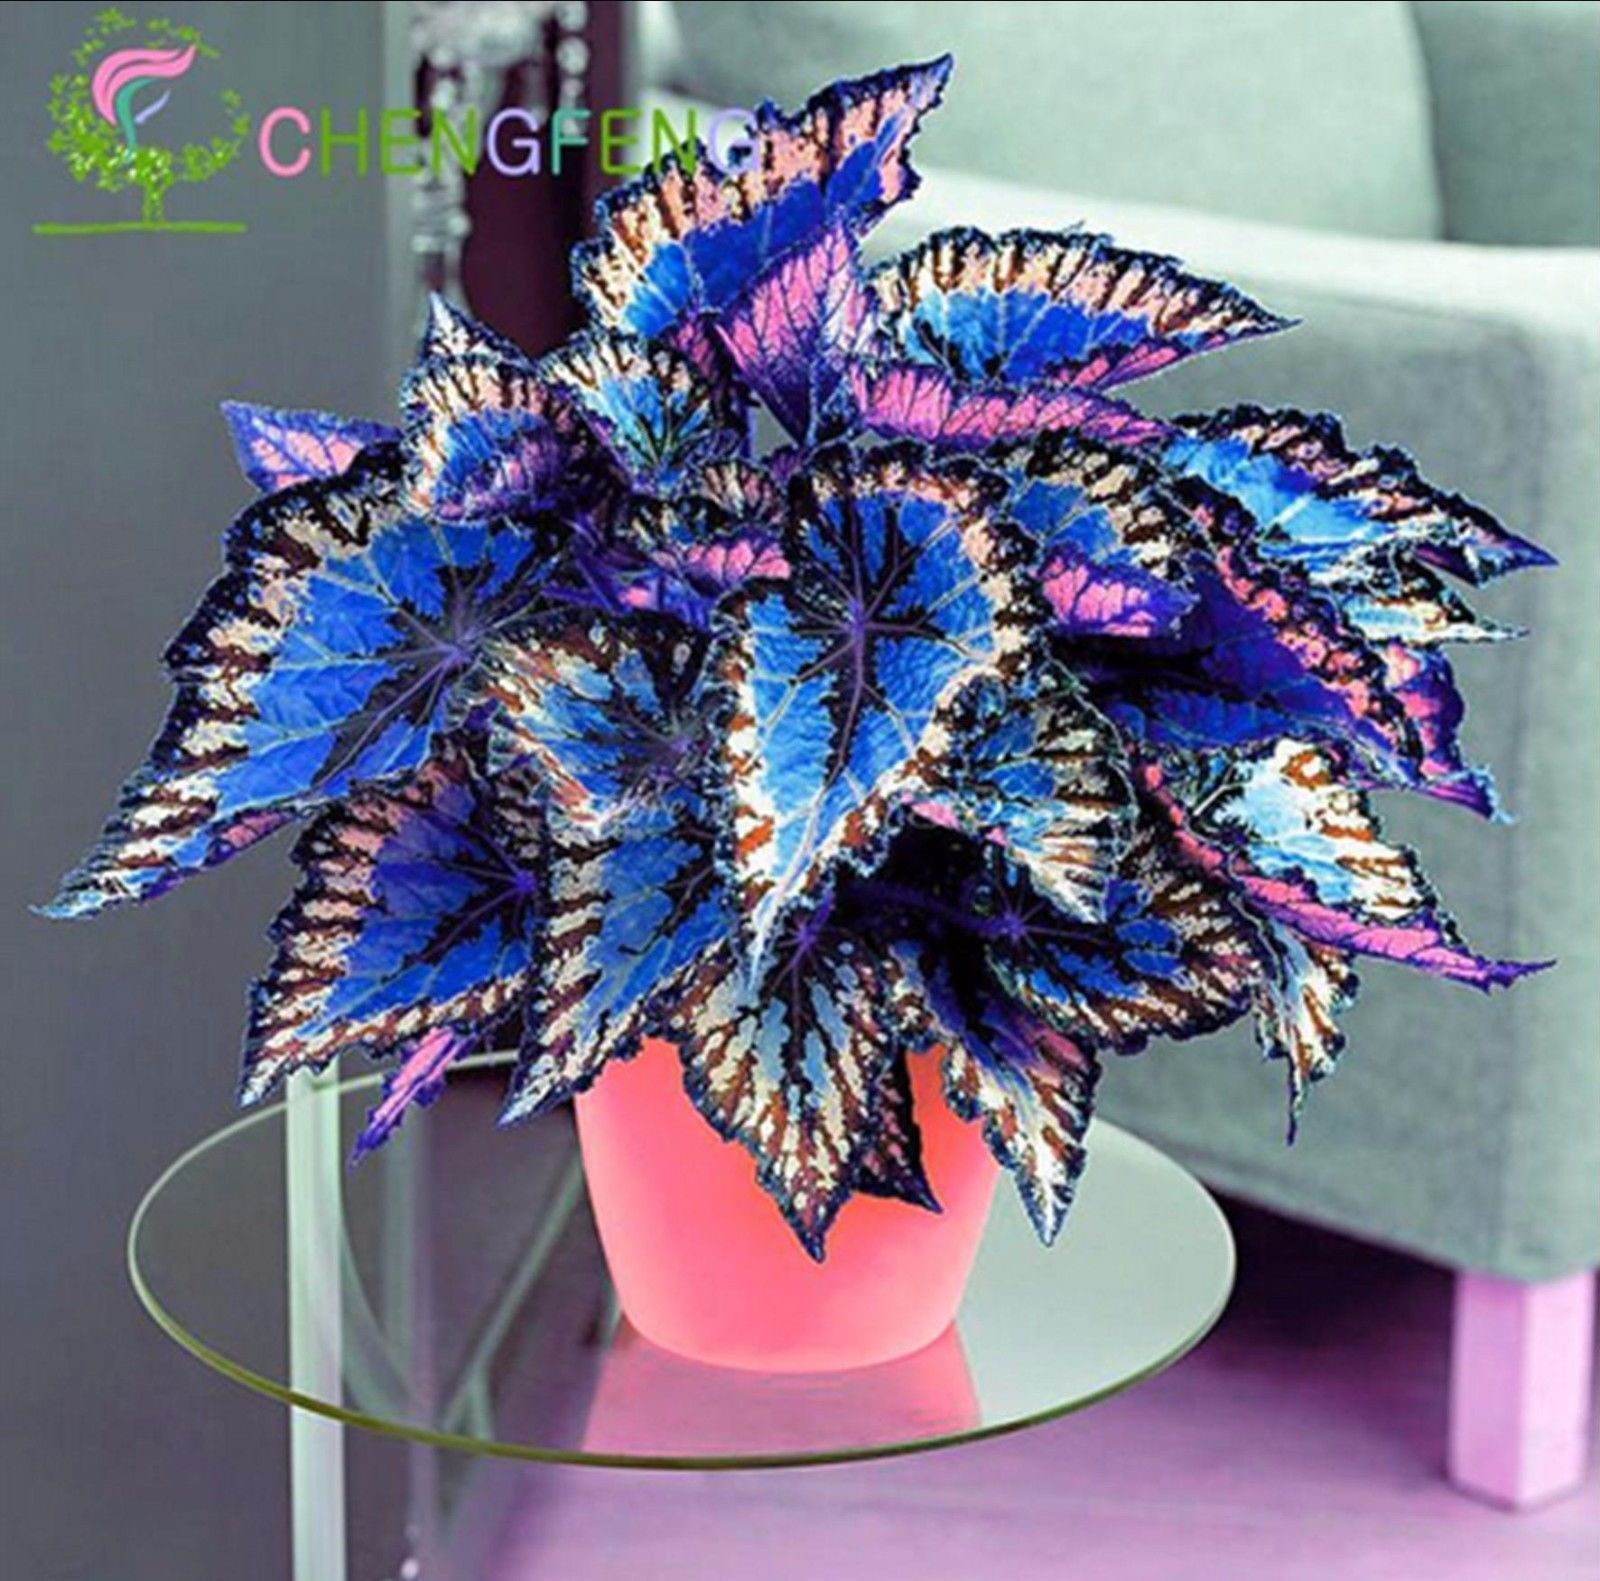 100 Pcs Japanese Bonsai Coleus Seeds Foliage Plants Perfect Color Rainbow Dragon Shipping Time To Us Ca South Korea Fr Foliage Plants Plants Bonsai Flower